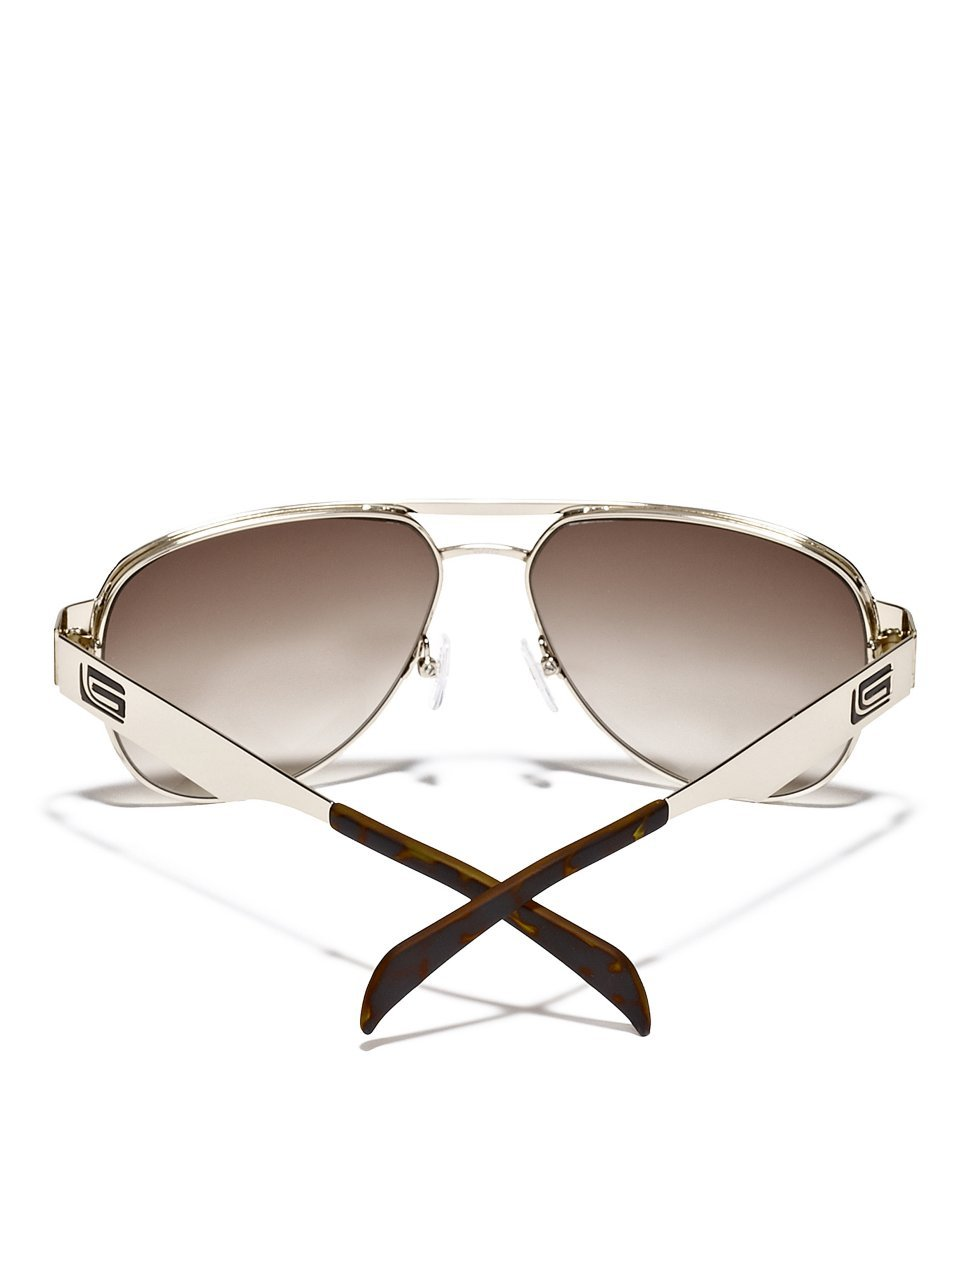 GUESS Men's Metal Aviator Sunglasses